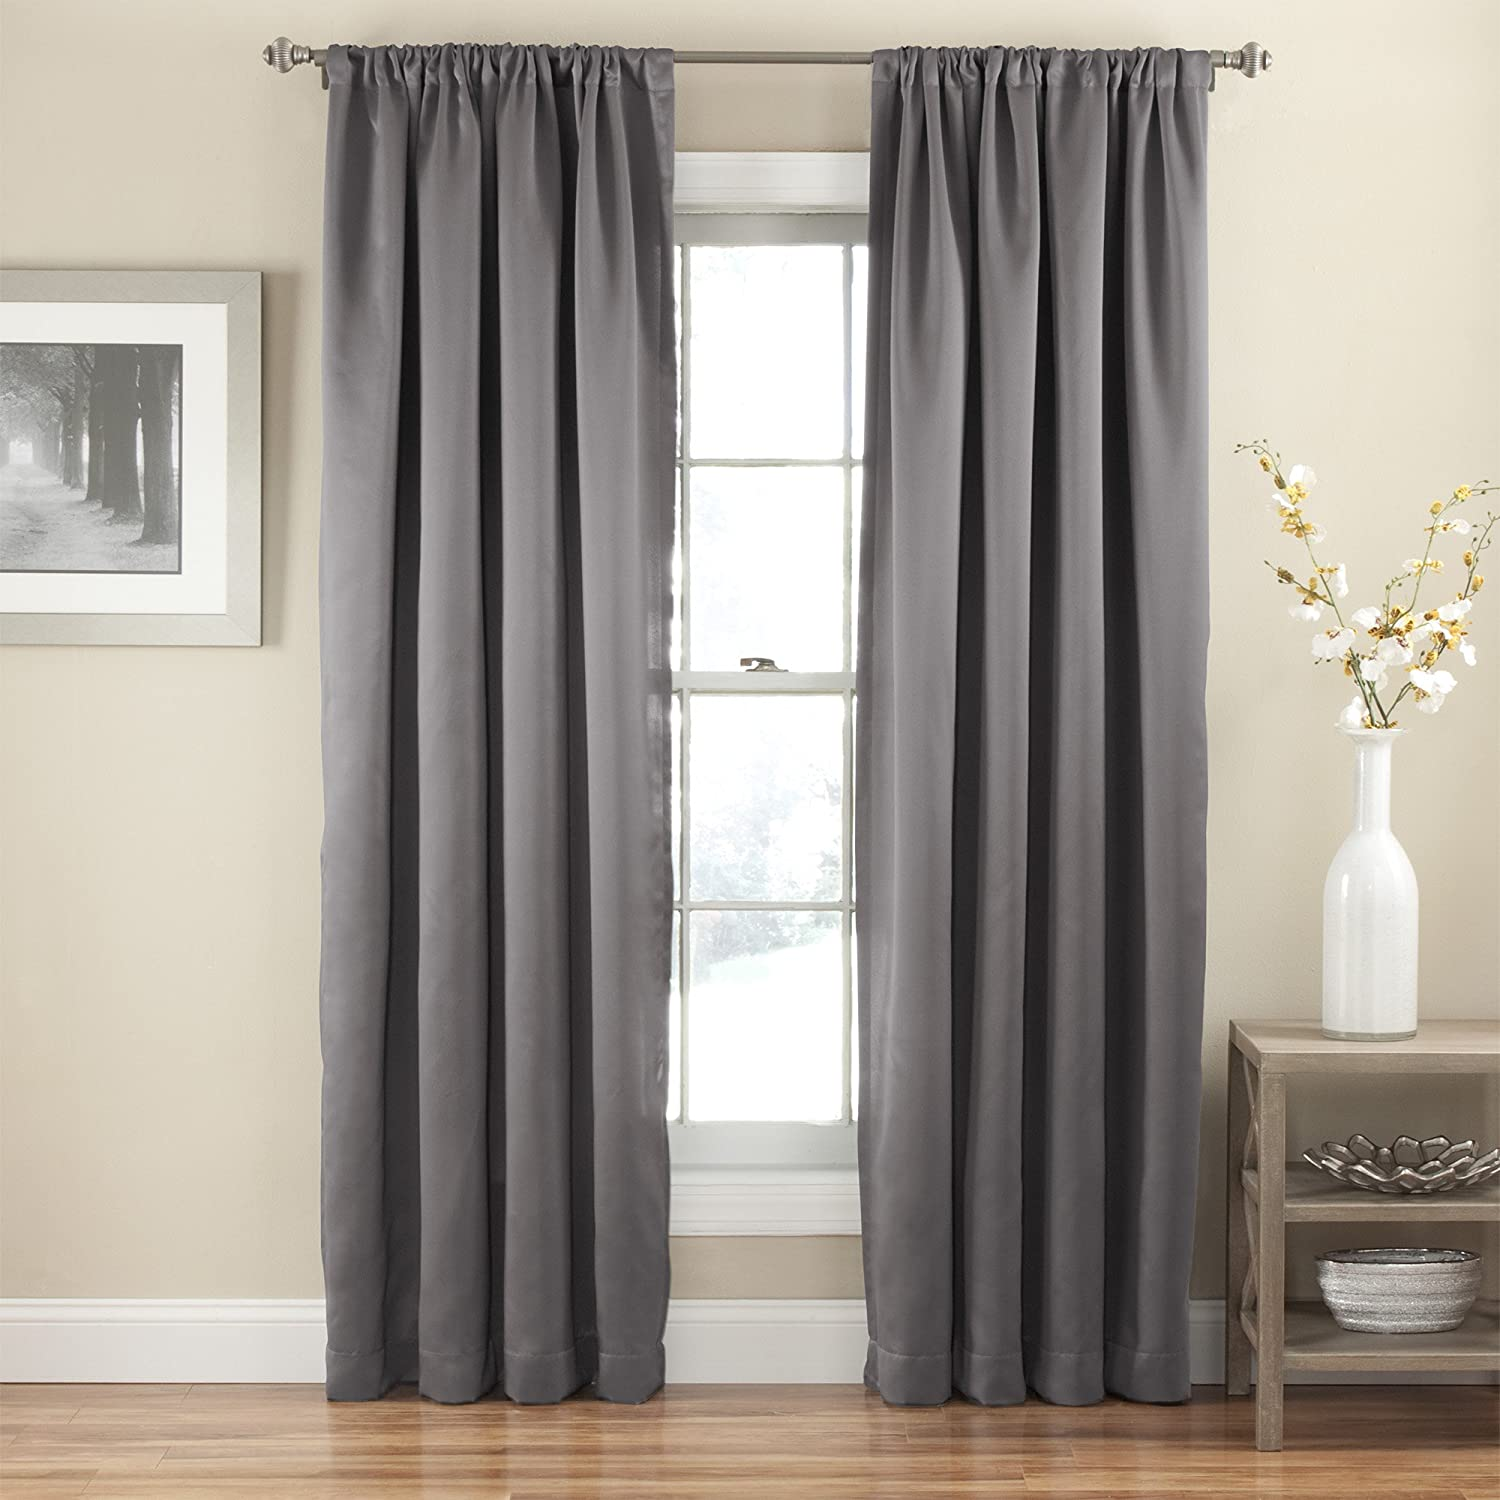 Beautiful Amazon.com: Eclipse 14378052084GRE Tricia Rod Pocket 52 Inch By 84 Inch  Single Blackout Curtain Thermapanel, Grey: Home U0026 Kitchen